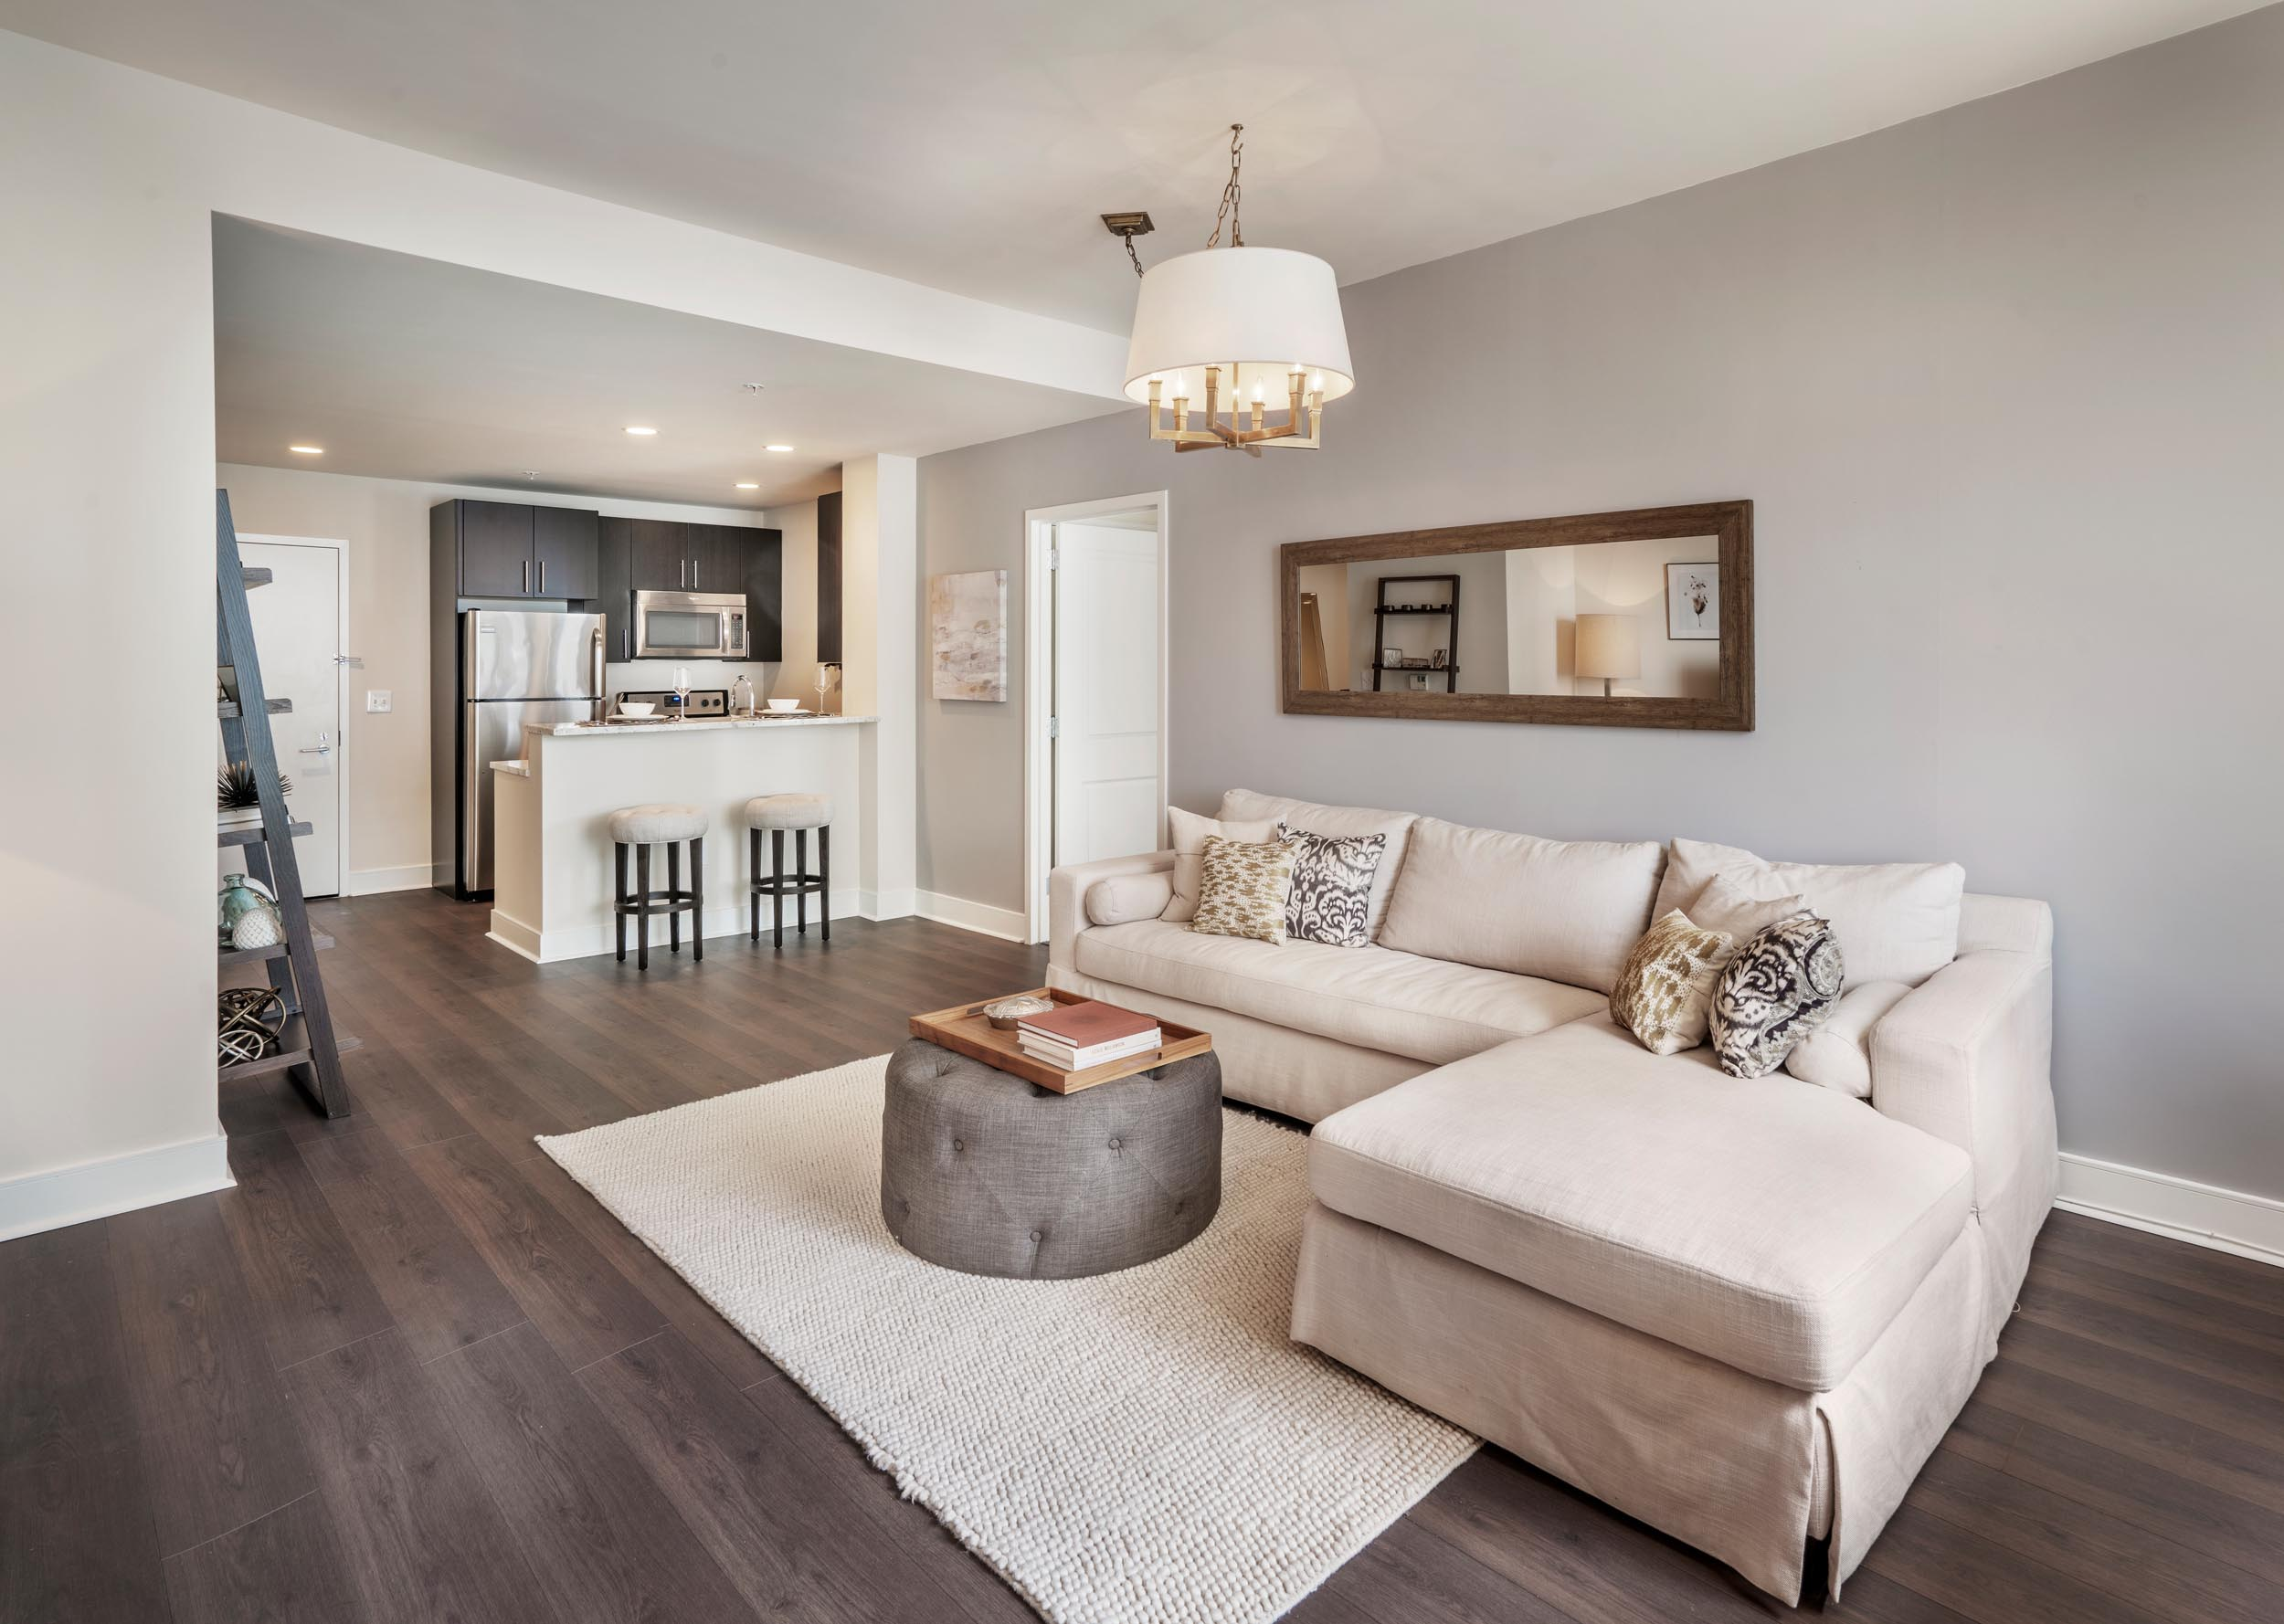 Living room at The Morgan with view into the kitchen including hardwood floors and 9-foot ceiling